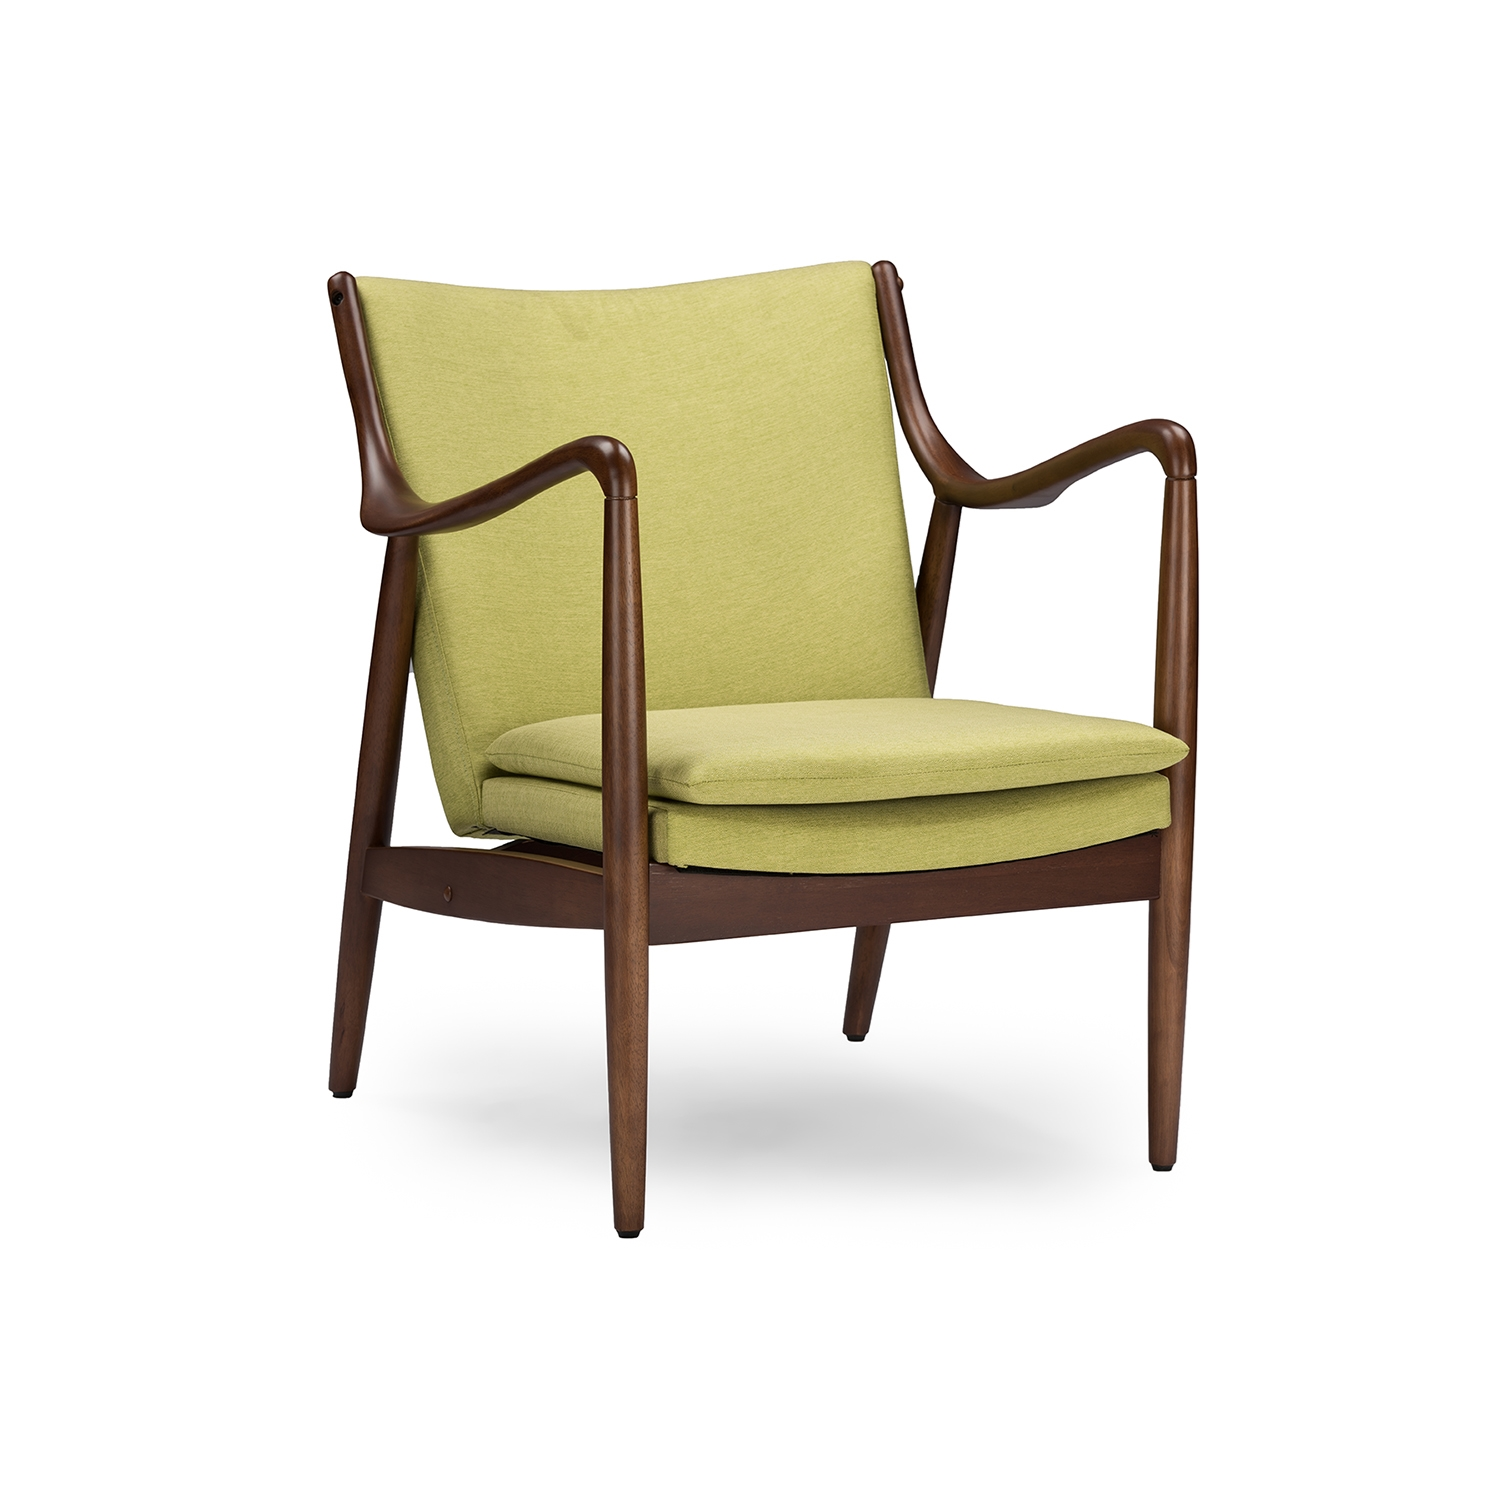 Mid Century Accent Chair Part - 47: Baxton Studio Shakespeare Mid-Century Modern Retro Green Fabric Upholstered  Leisure Accent Chair In Walnut Wood Frame